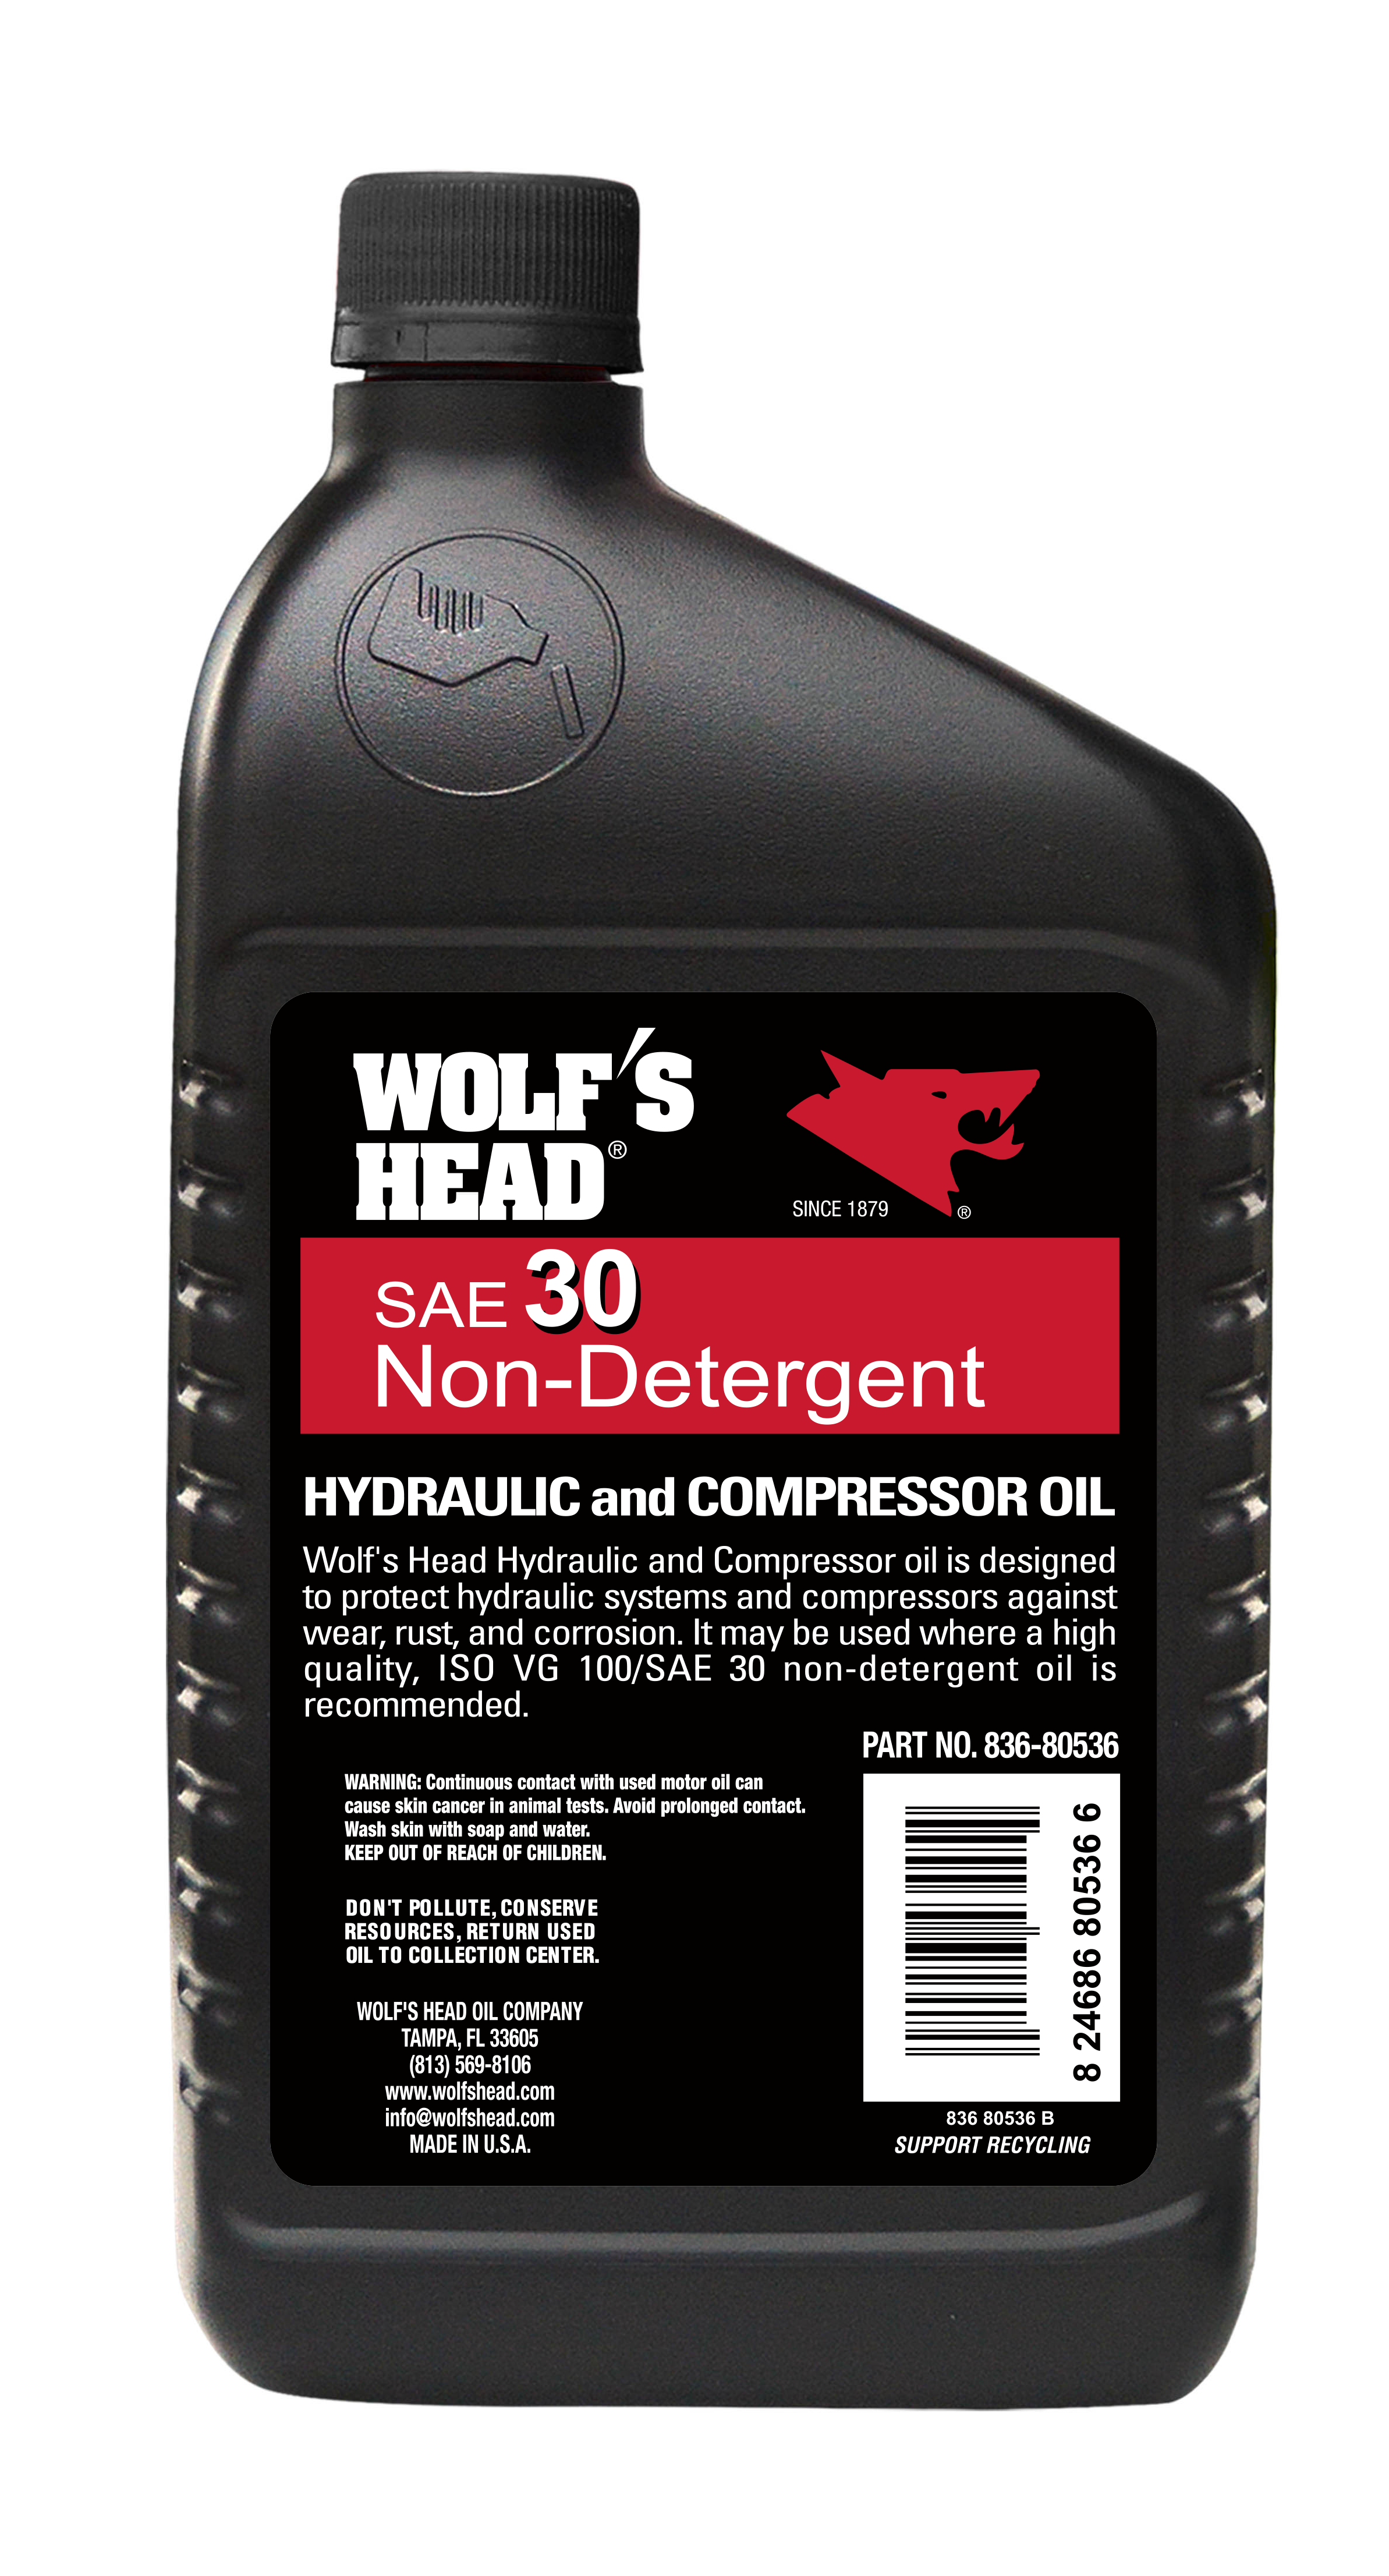 Sae engine oil specifications for What does sae mean on motor oil